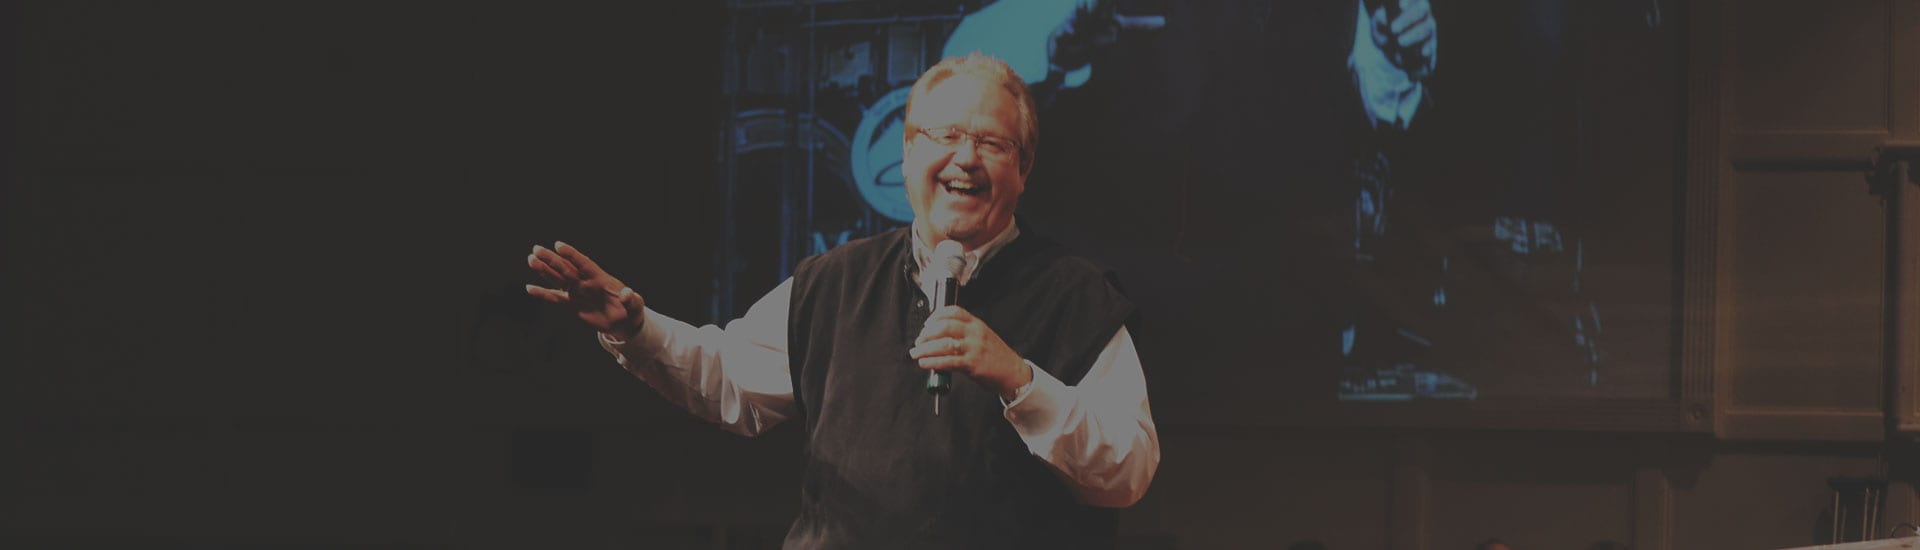 Laughter in the Midst of Heartache with Comedian Dennis Swanberg